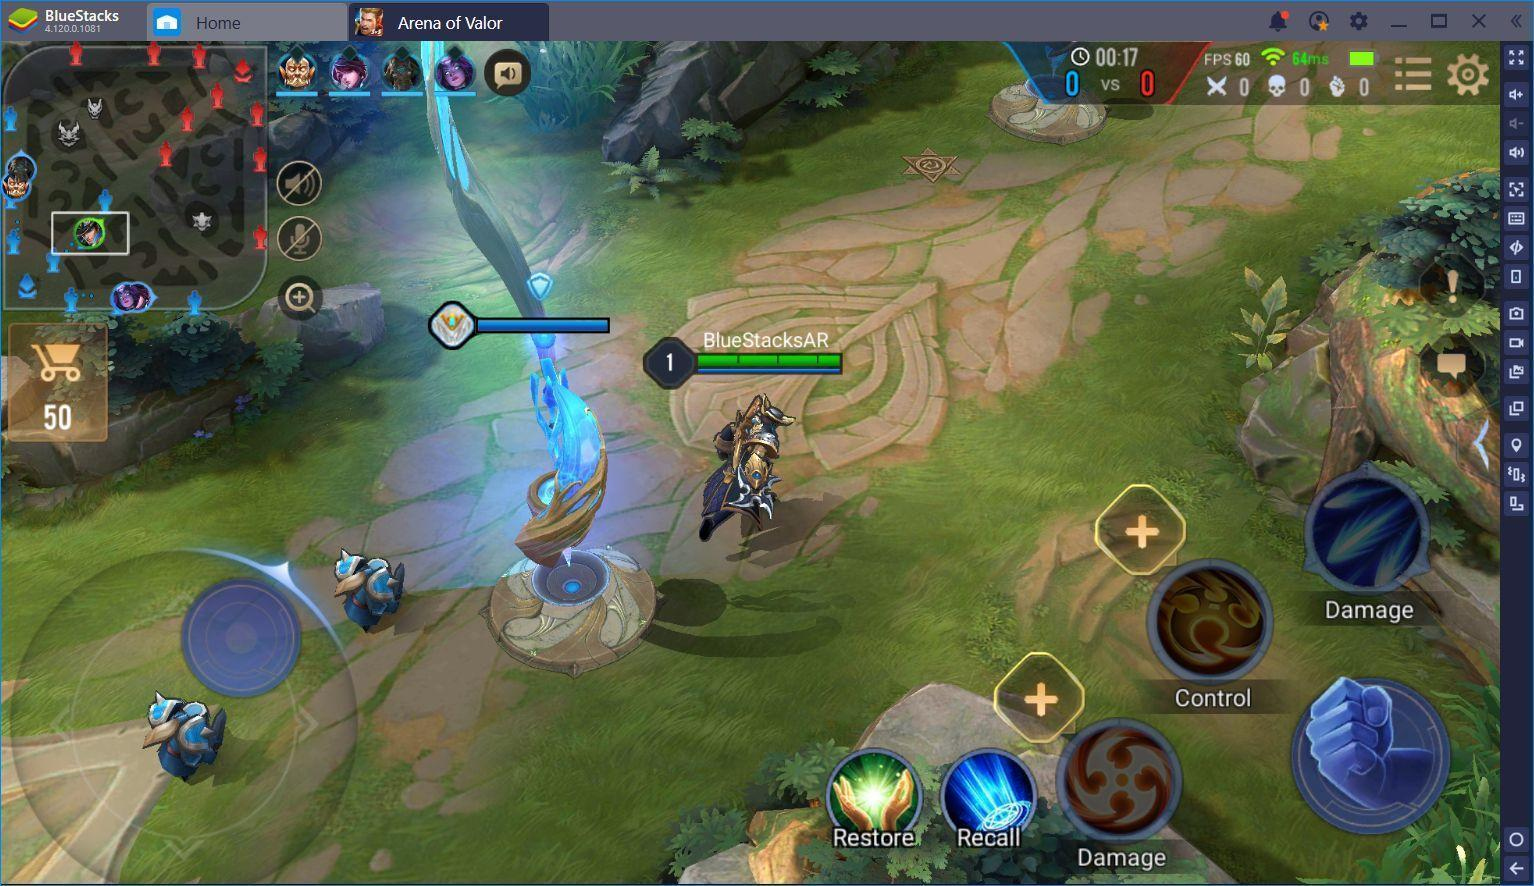 How to remove friends in Arena of Valor